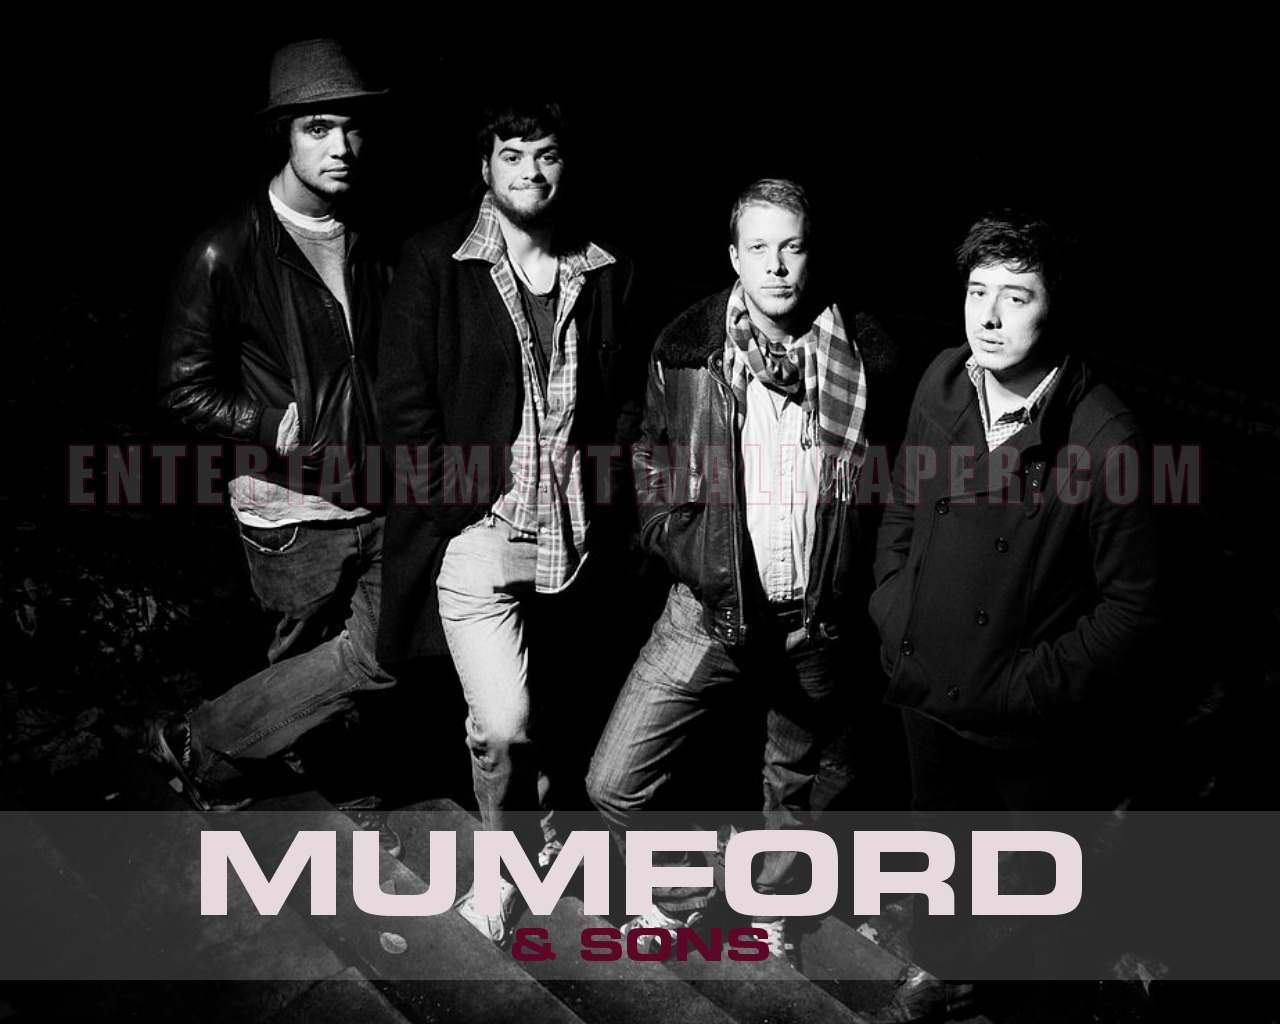 Mumford & Sons Wallpaper - Original size, ...